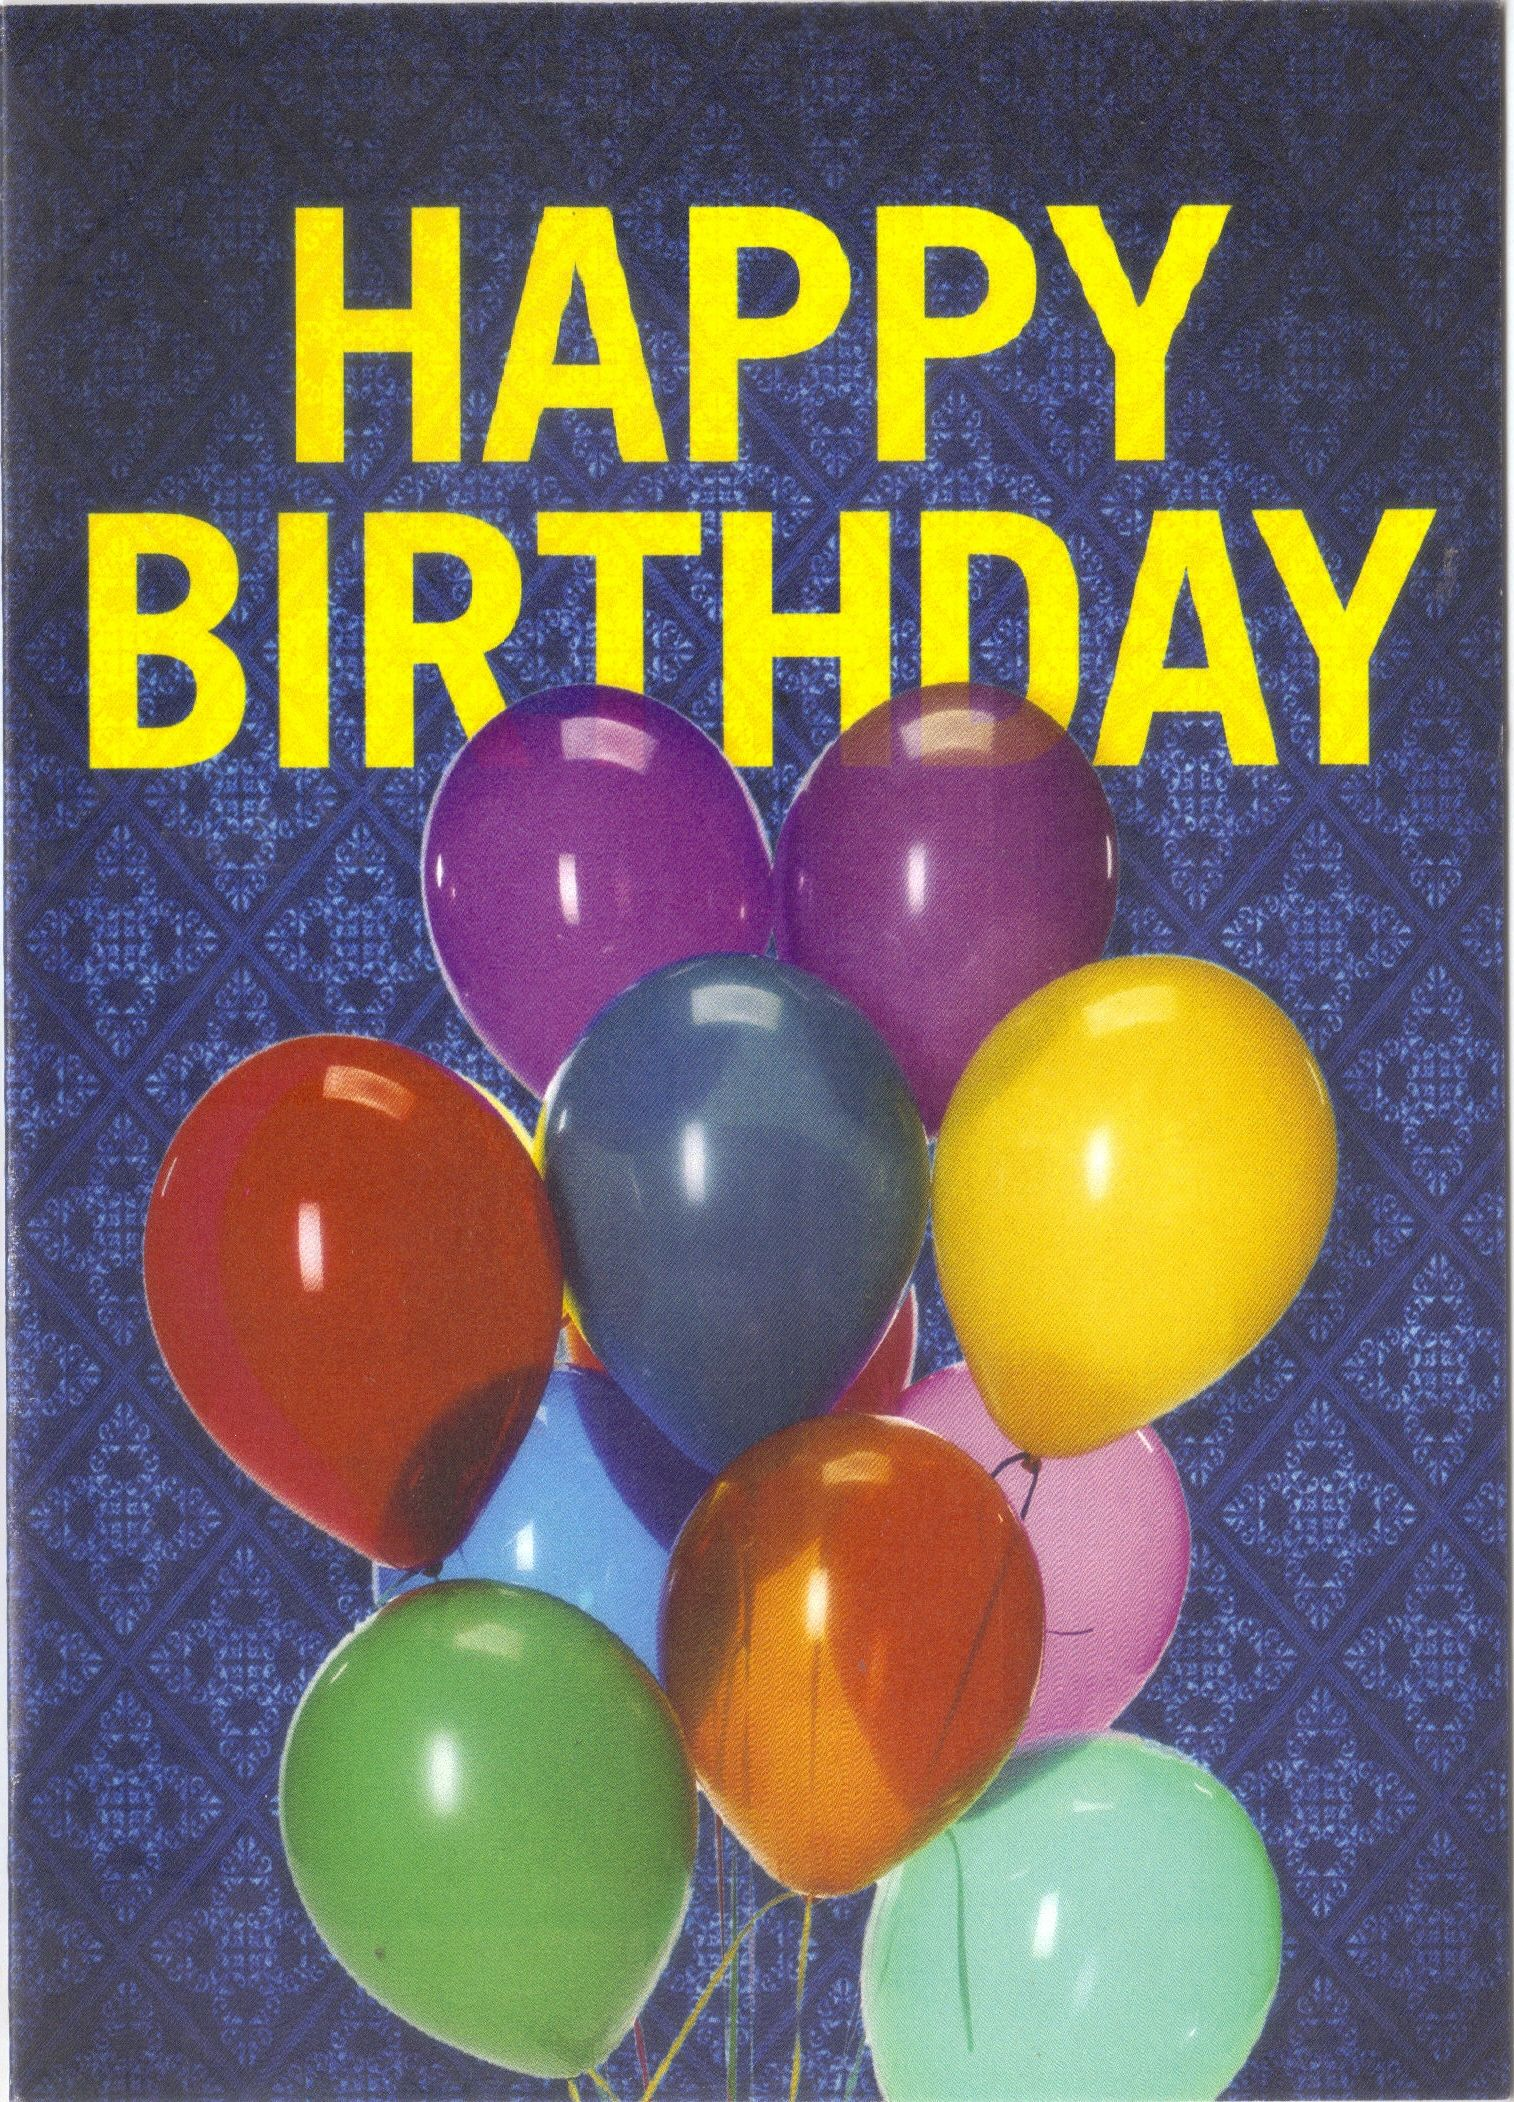 Happy Birthday Card With Balloons Cute From CapitolOne Financial Advisors For Janice Marshall